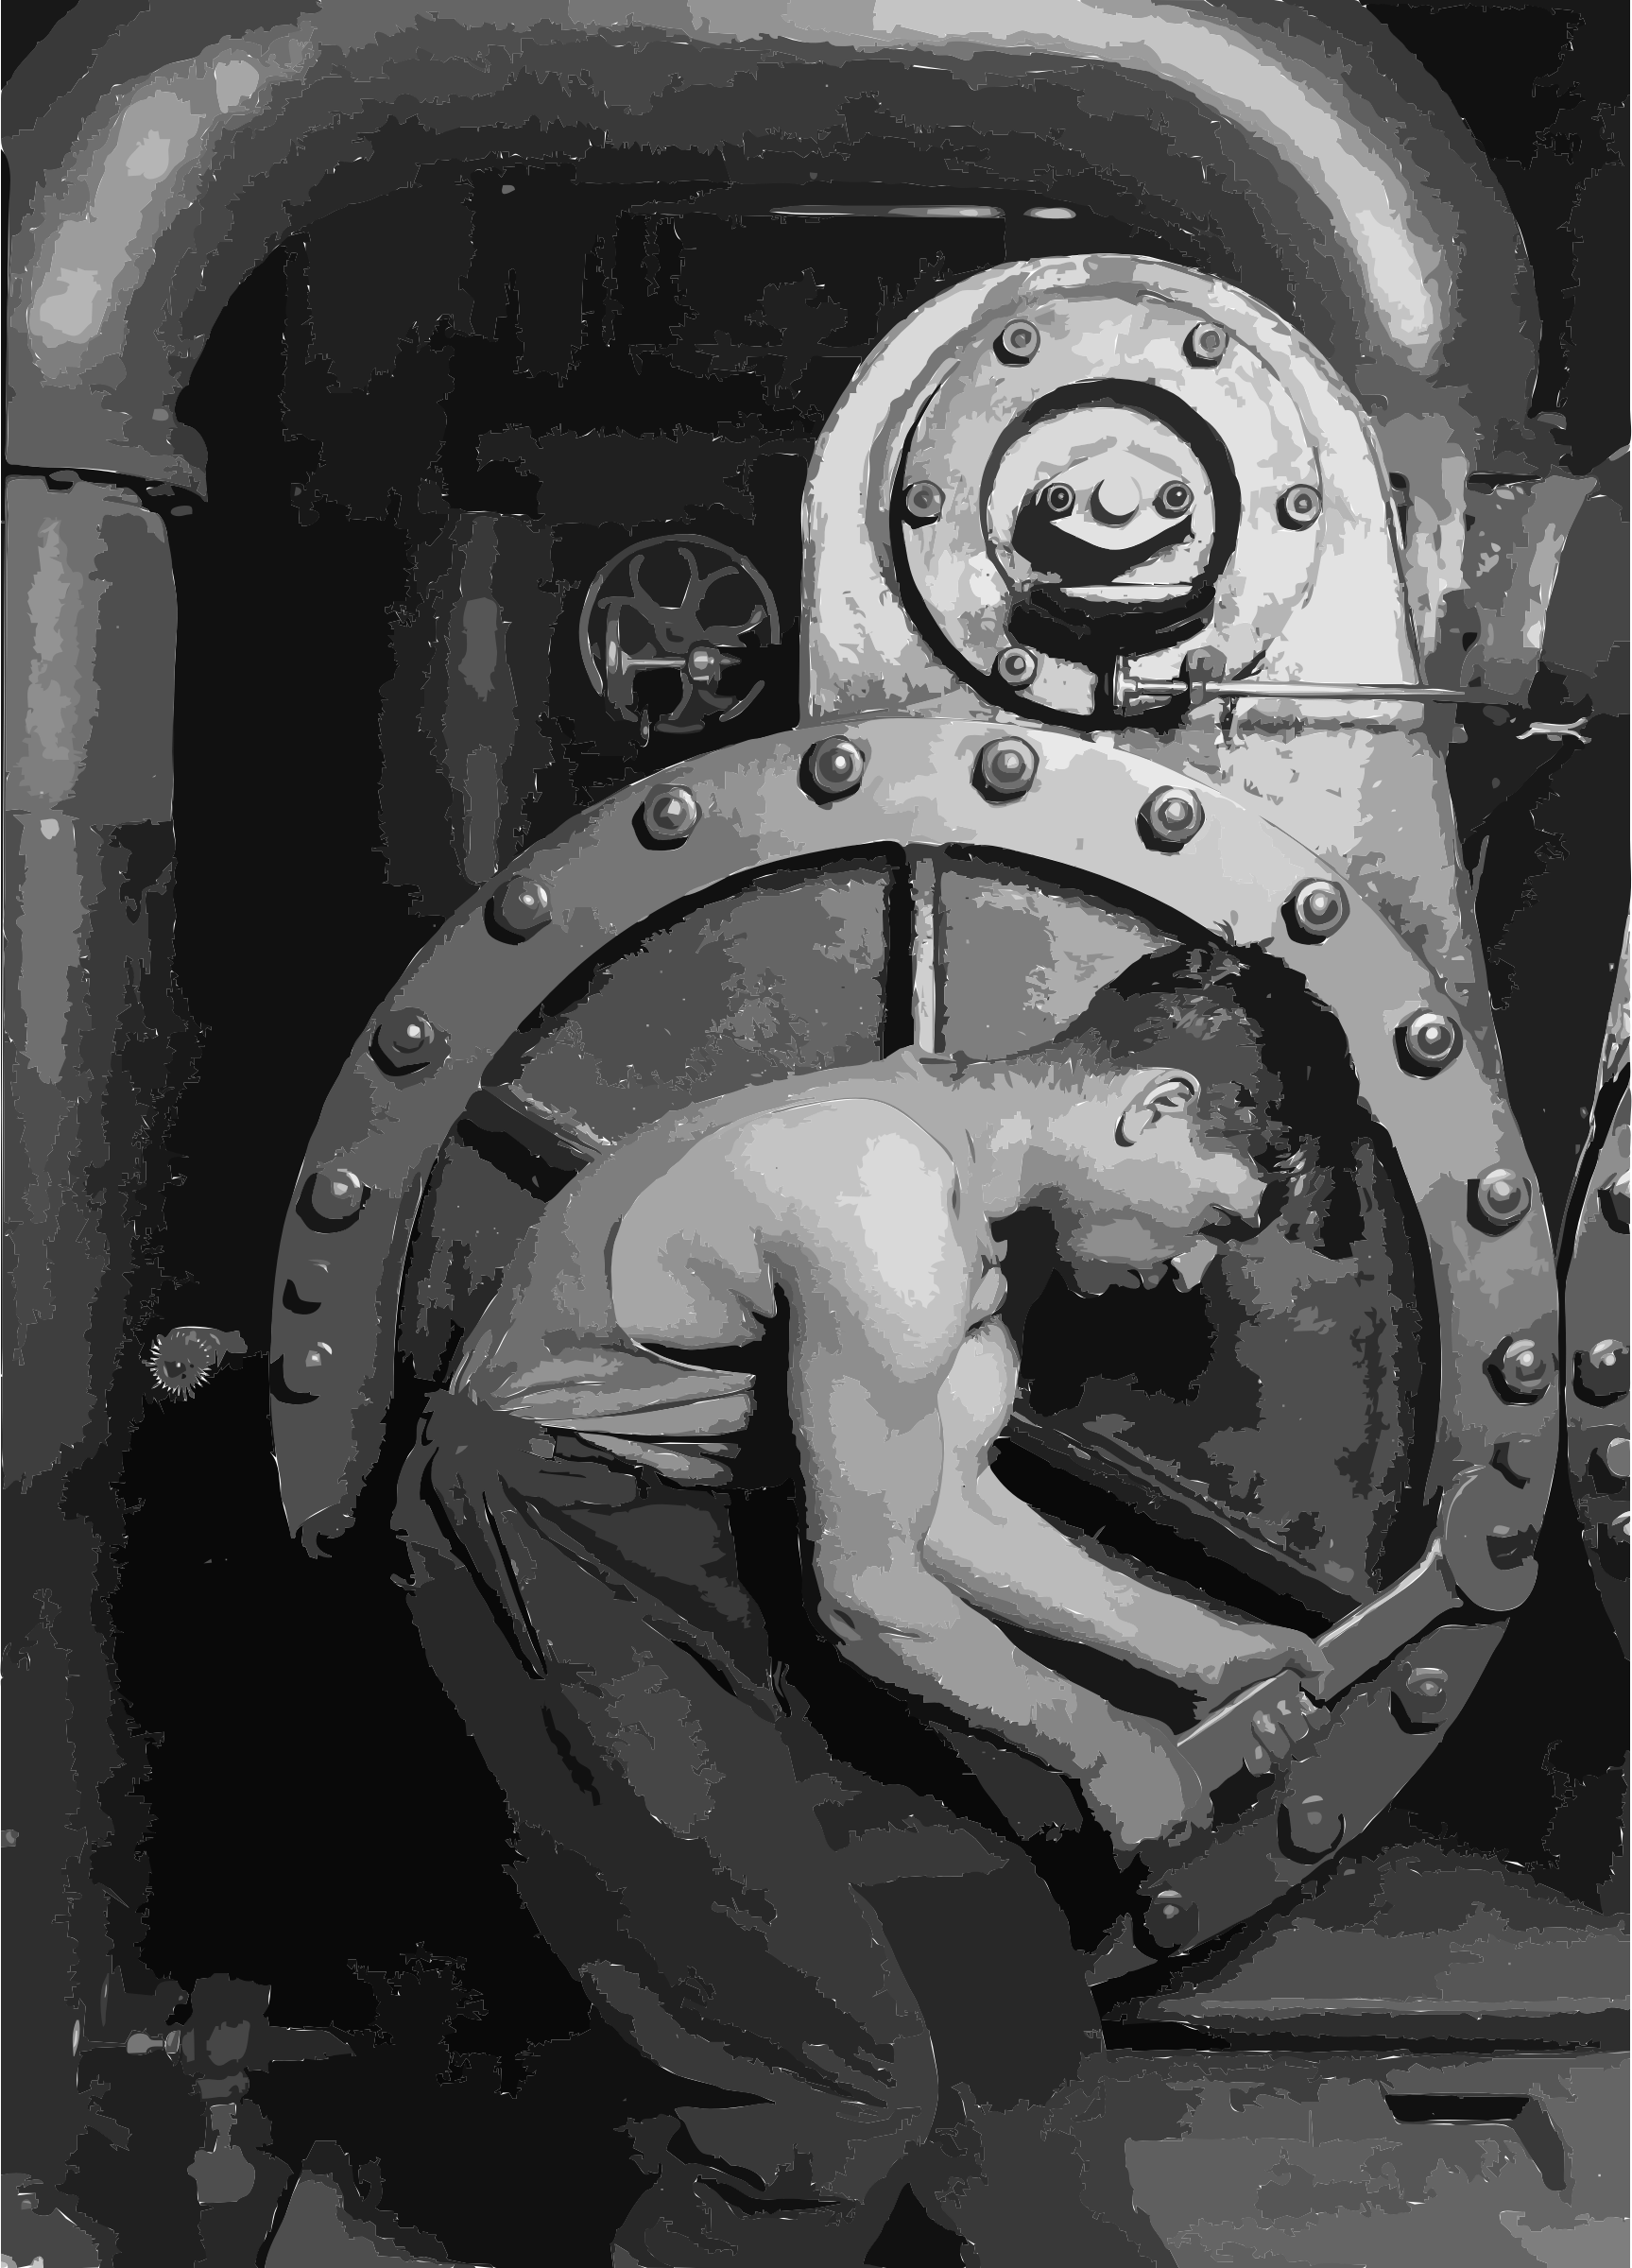 Lewis Hine Power house mechanic working on steam pump by 5nbz3a+45jqtl07aorc